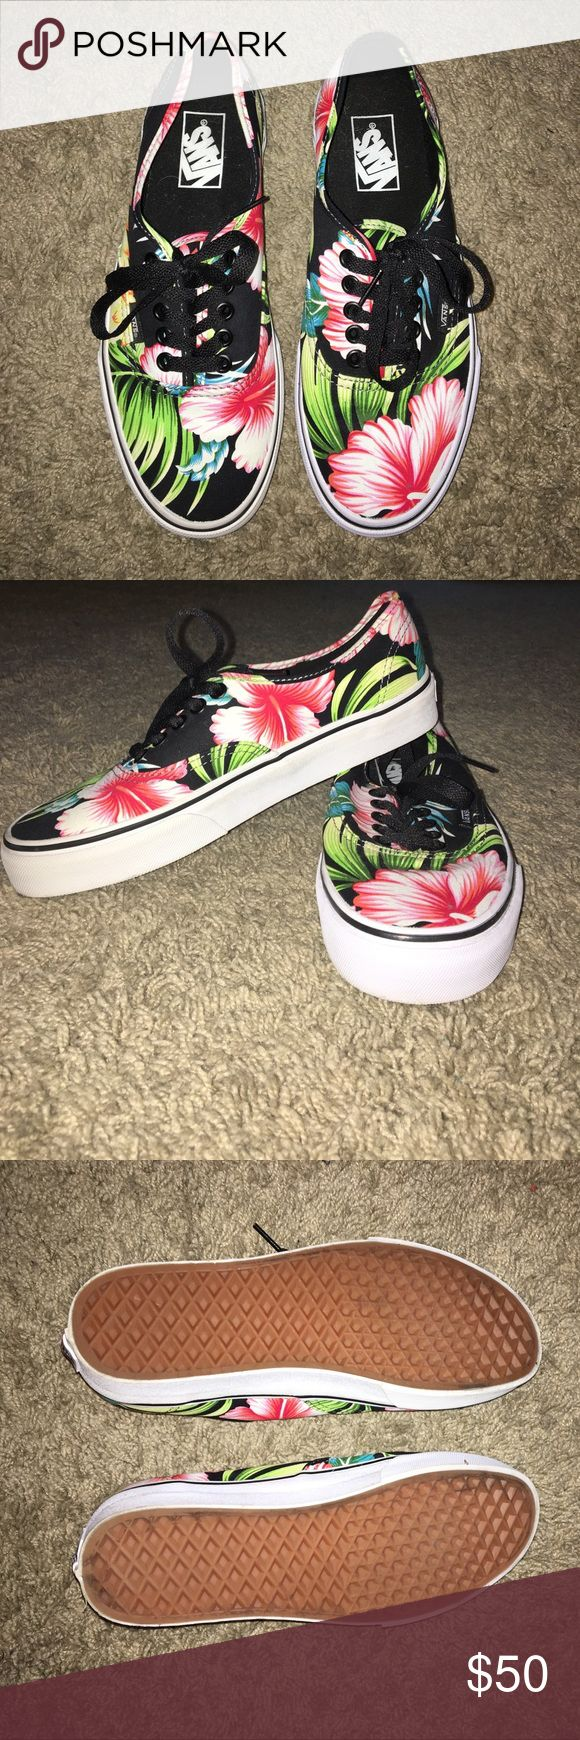 NWOT Tropical print Vans- size 8 women 6.5 men I got these back in August and completely forgot I had them so I think it's time they find a new home... Never worn. The colors on the shoes are absolutely beautiful and truly they can go with just about anything. They fit true to size and as Vans are, they're extremely comfortable. They come with black laces in them. Vans Shoes Sneakers